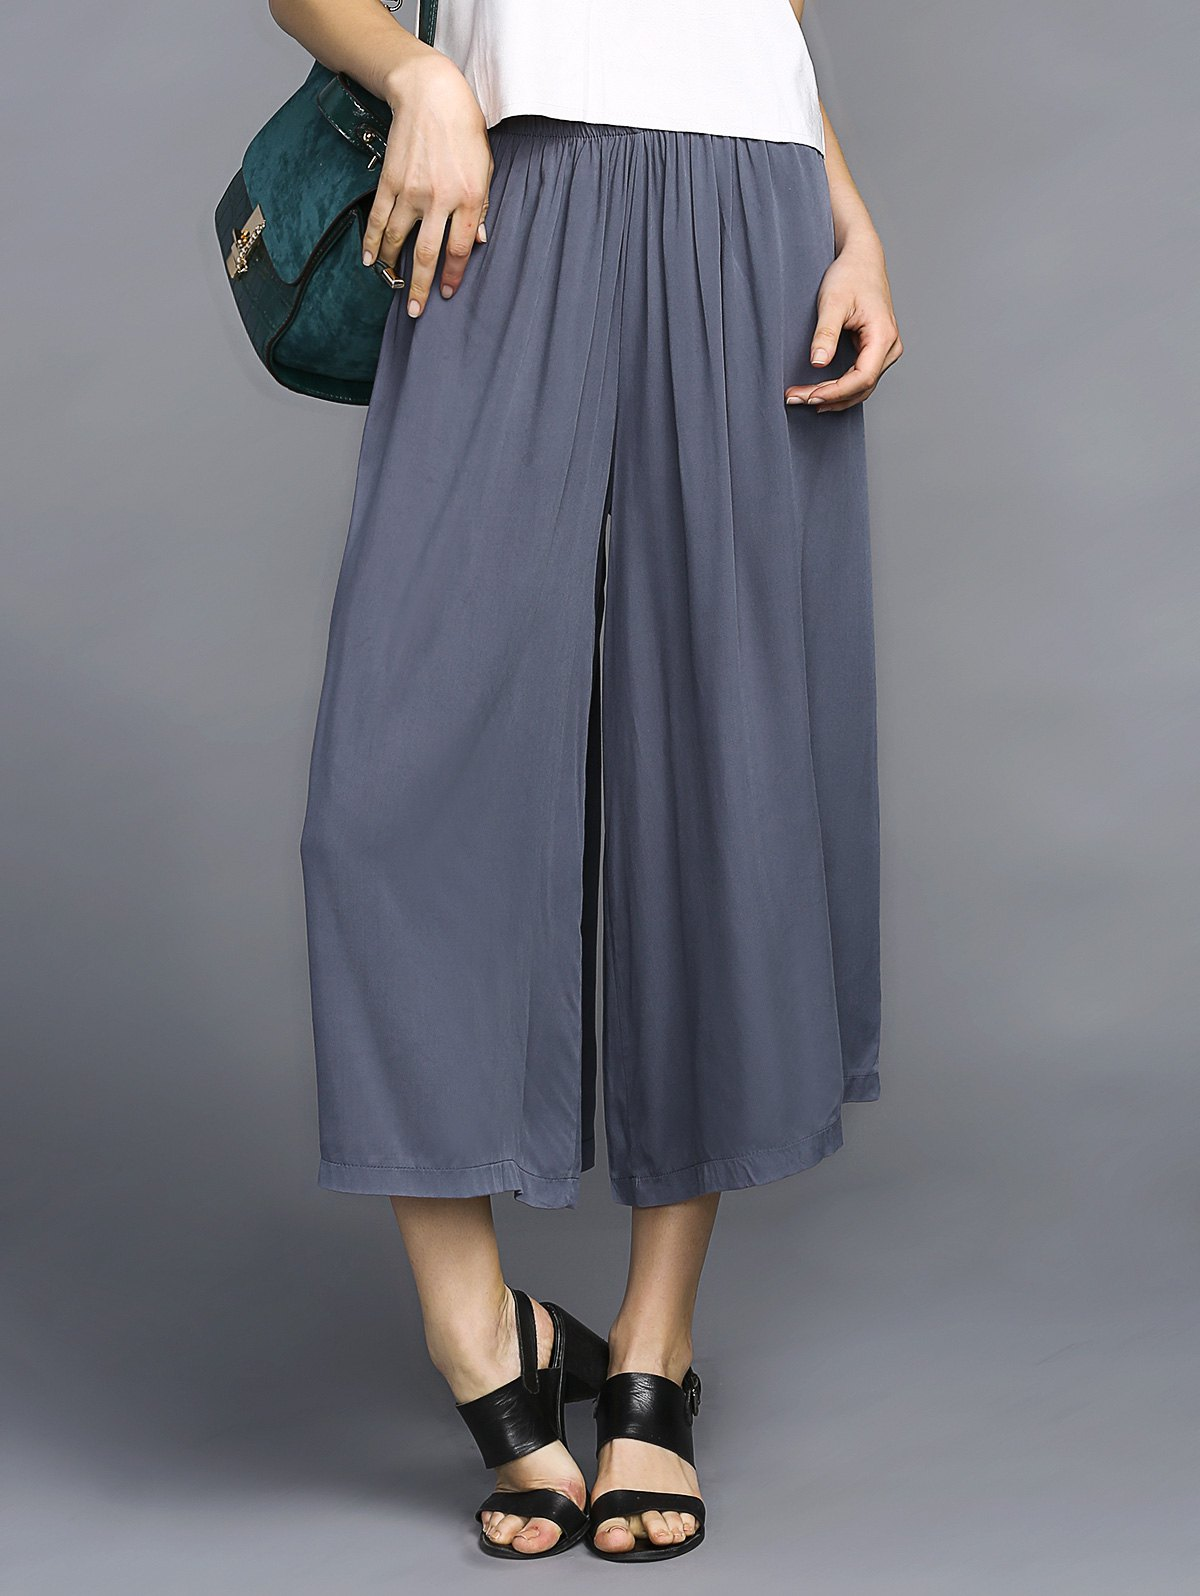 Trendy Elastic Waist Wide Leg Pure Color Chiffon Women's Ankle Pants - BLUE GRAY ONE SIZE(FIT SIZE XS TO M)